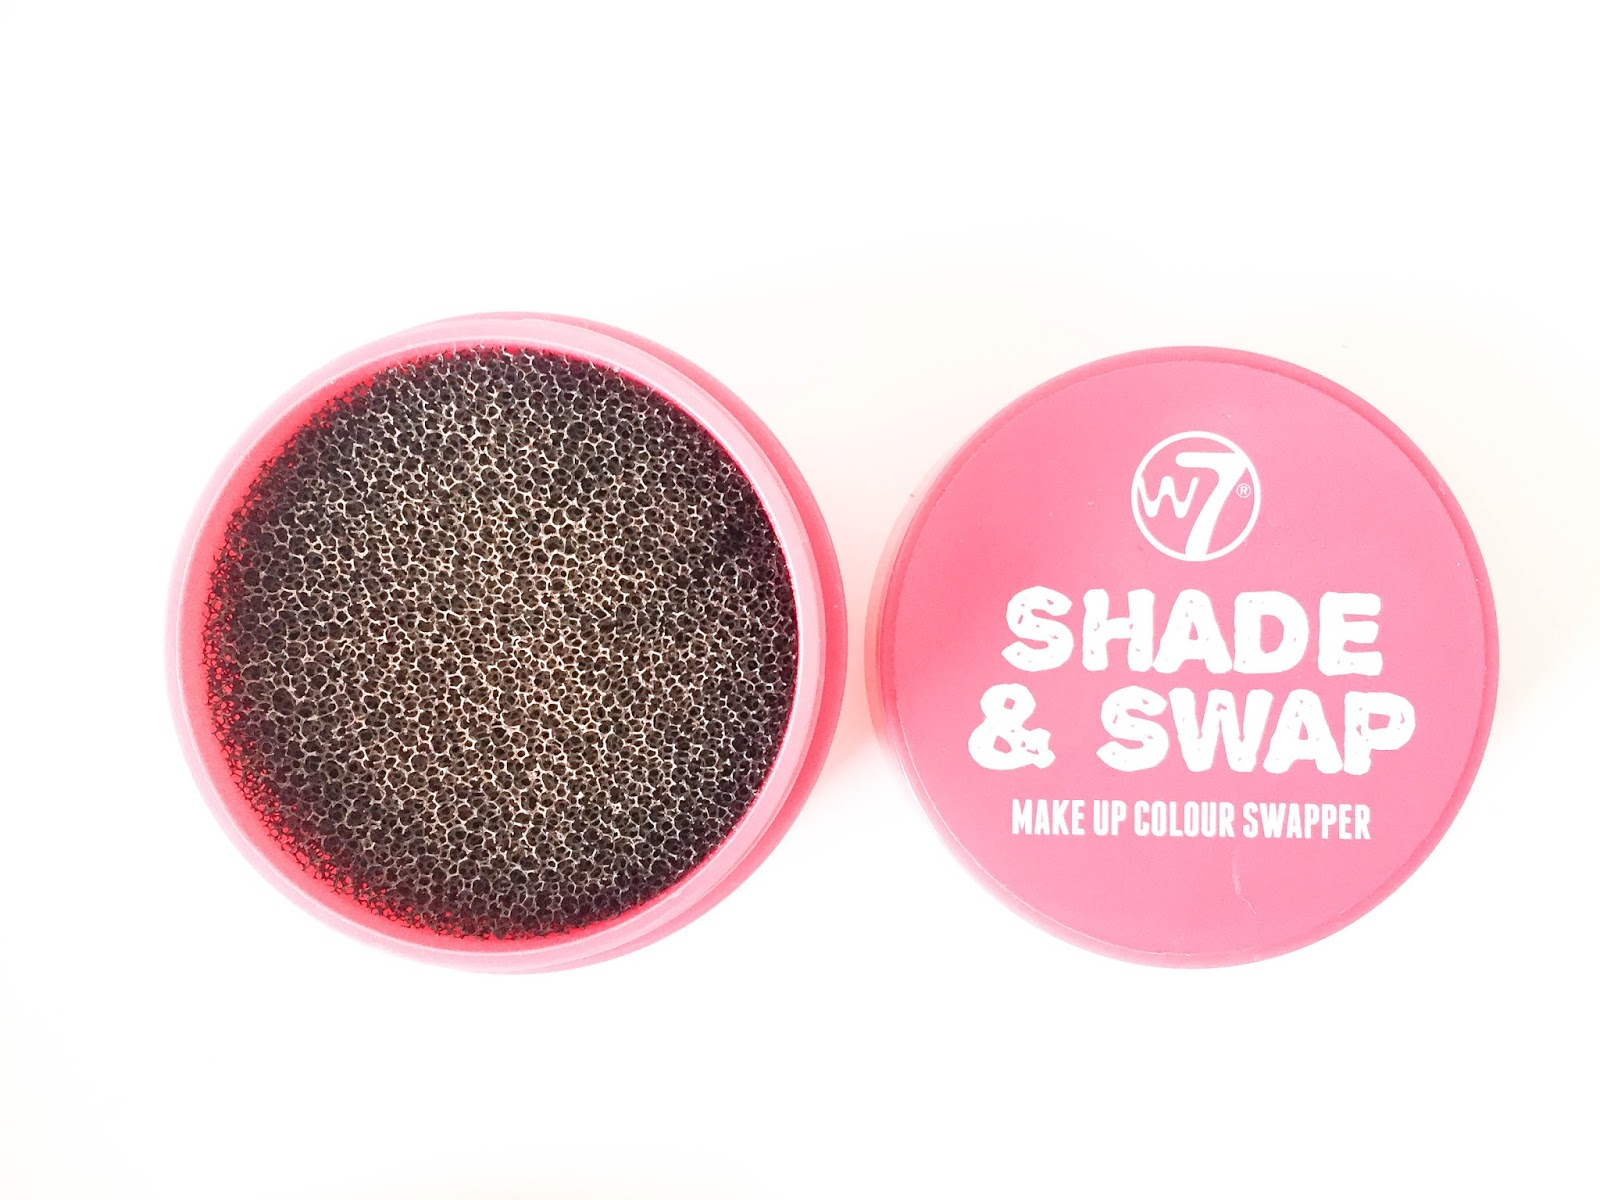 W7 shade and swap